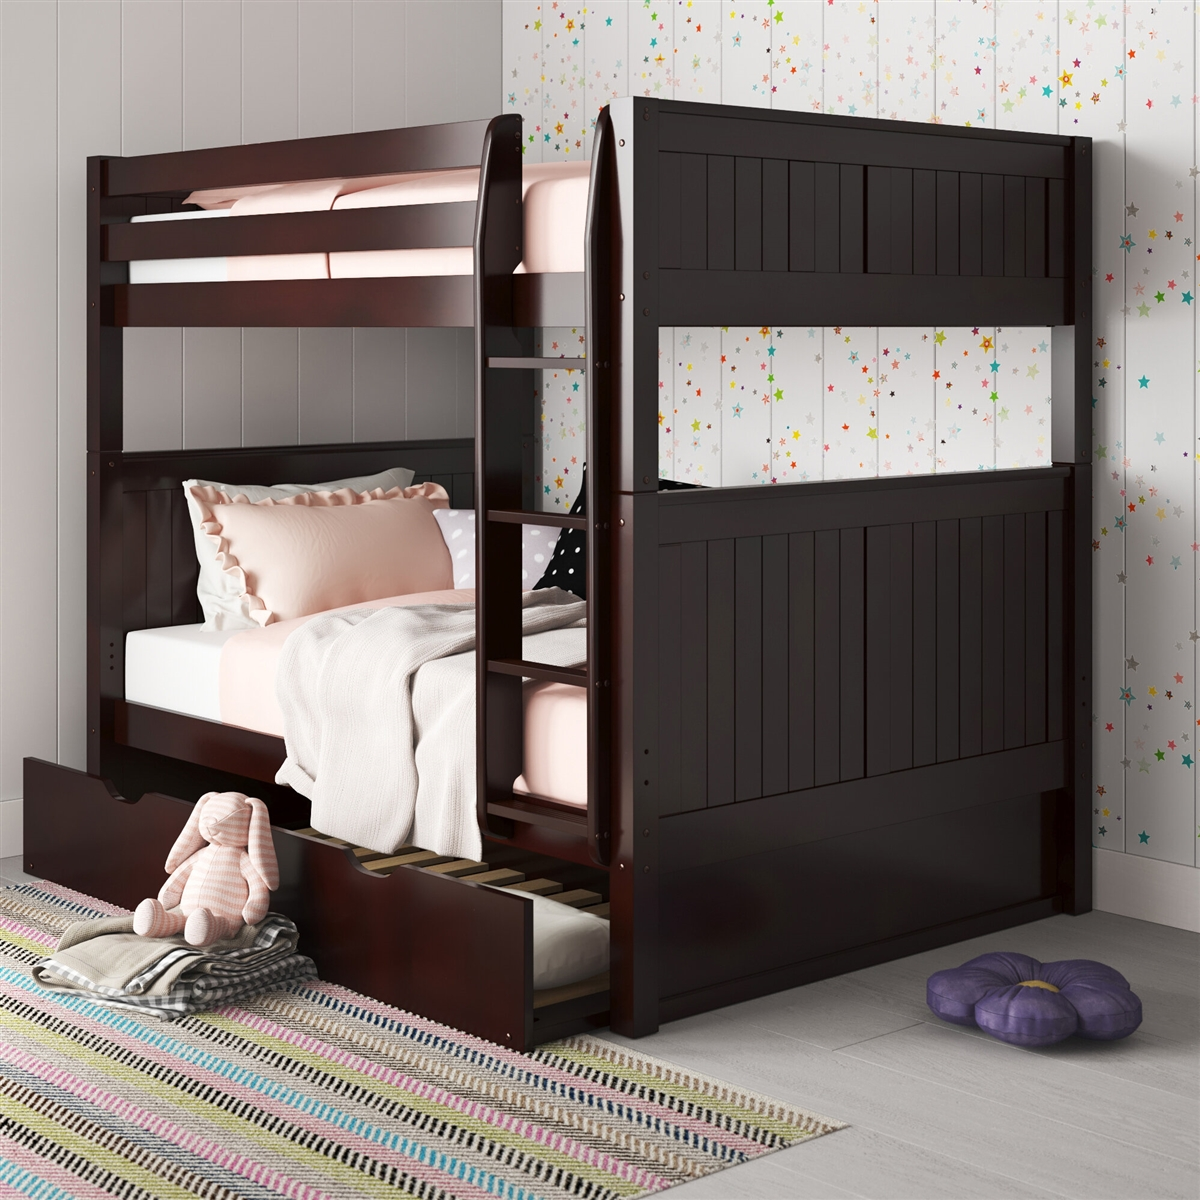 Full Over Full Bunk Bed Trundle Panel Cappuccino